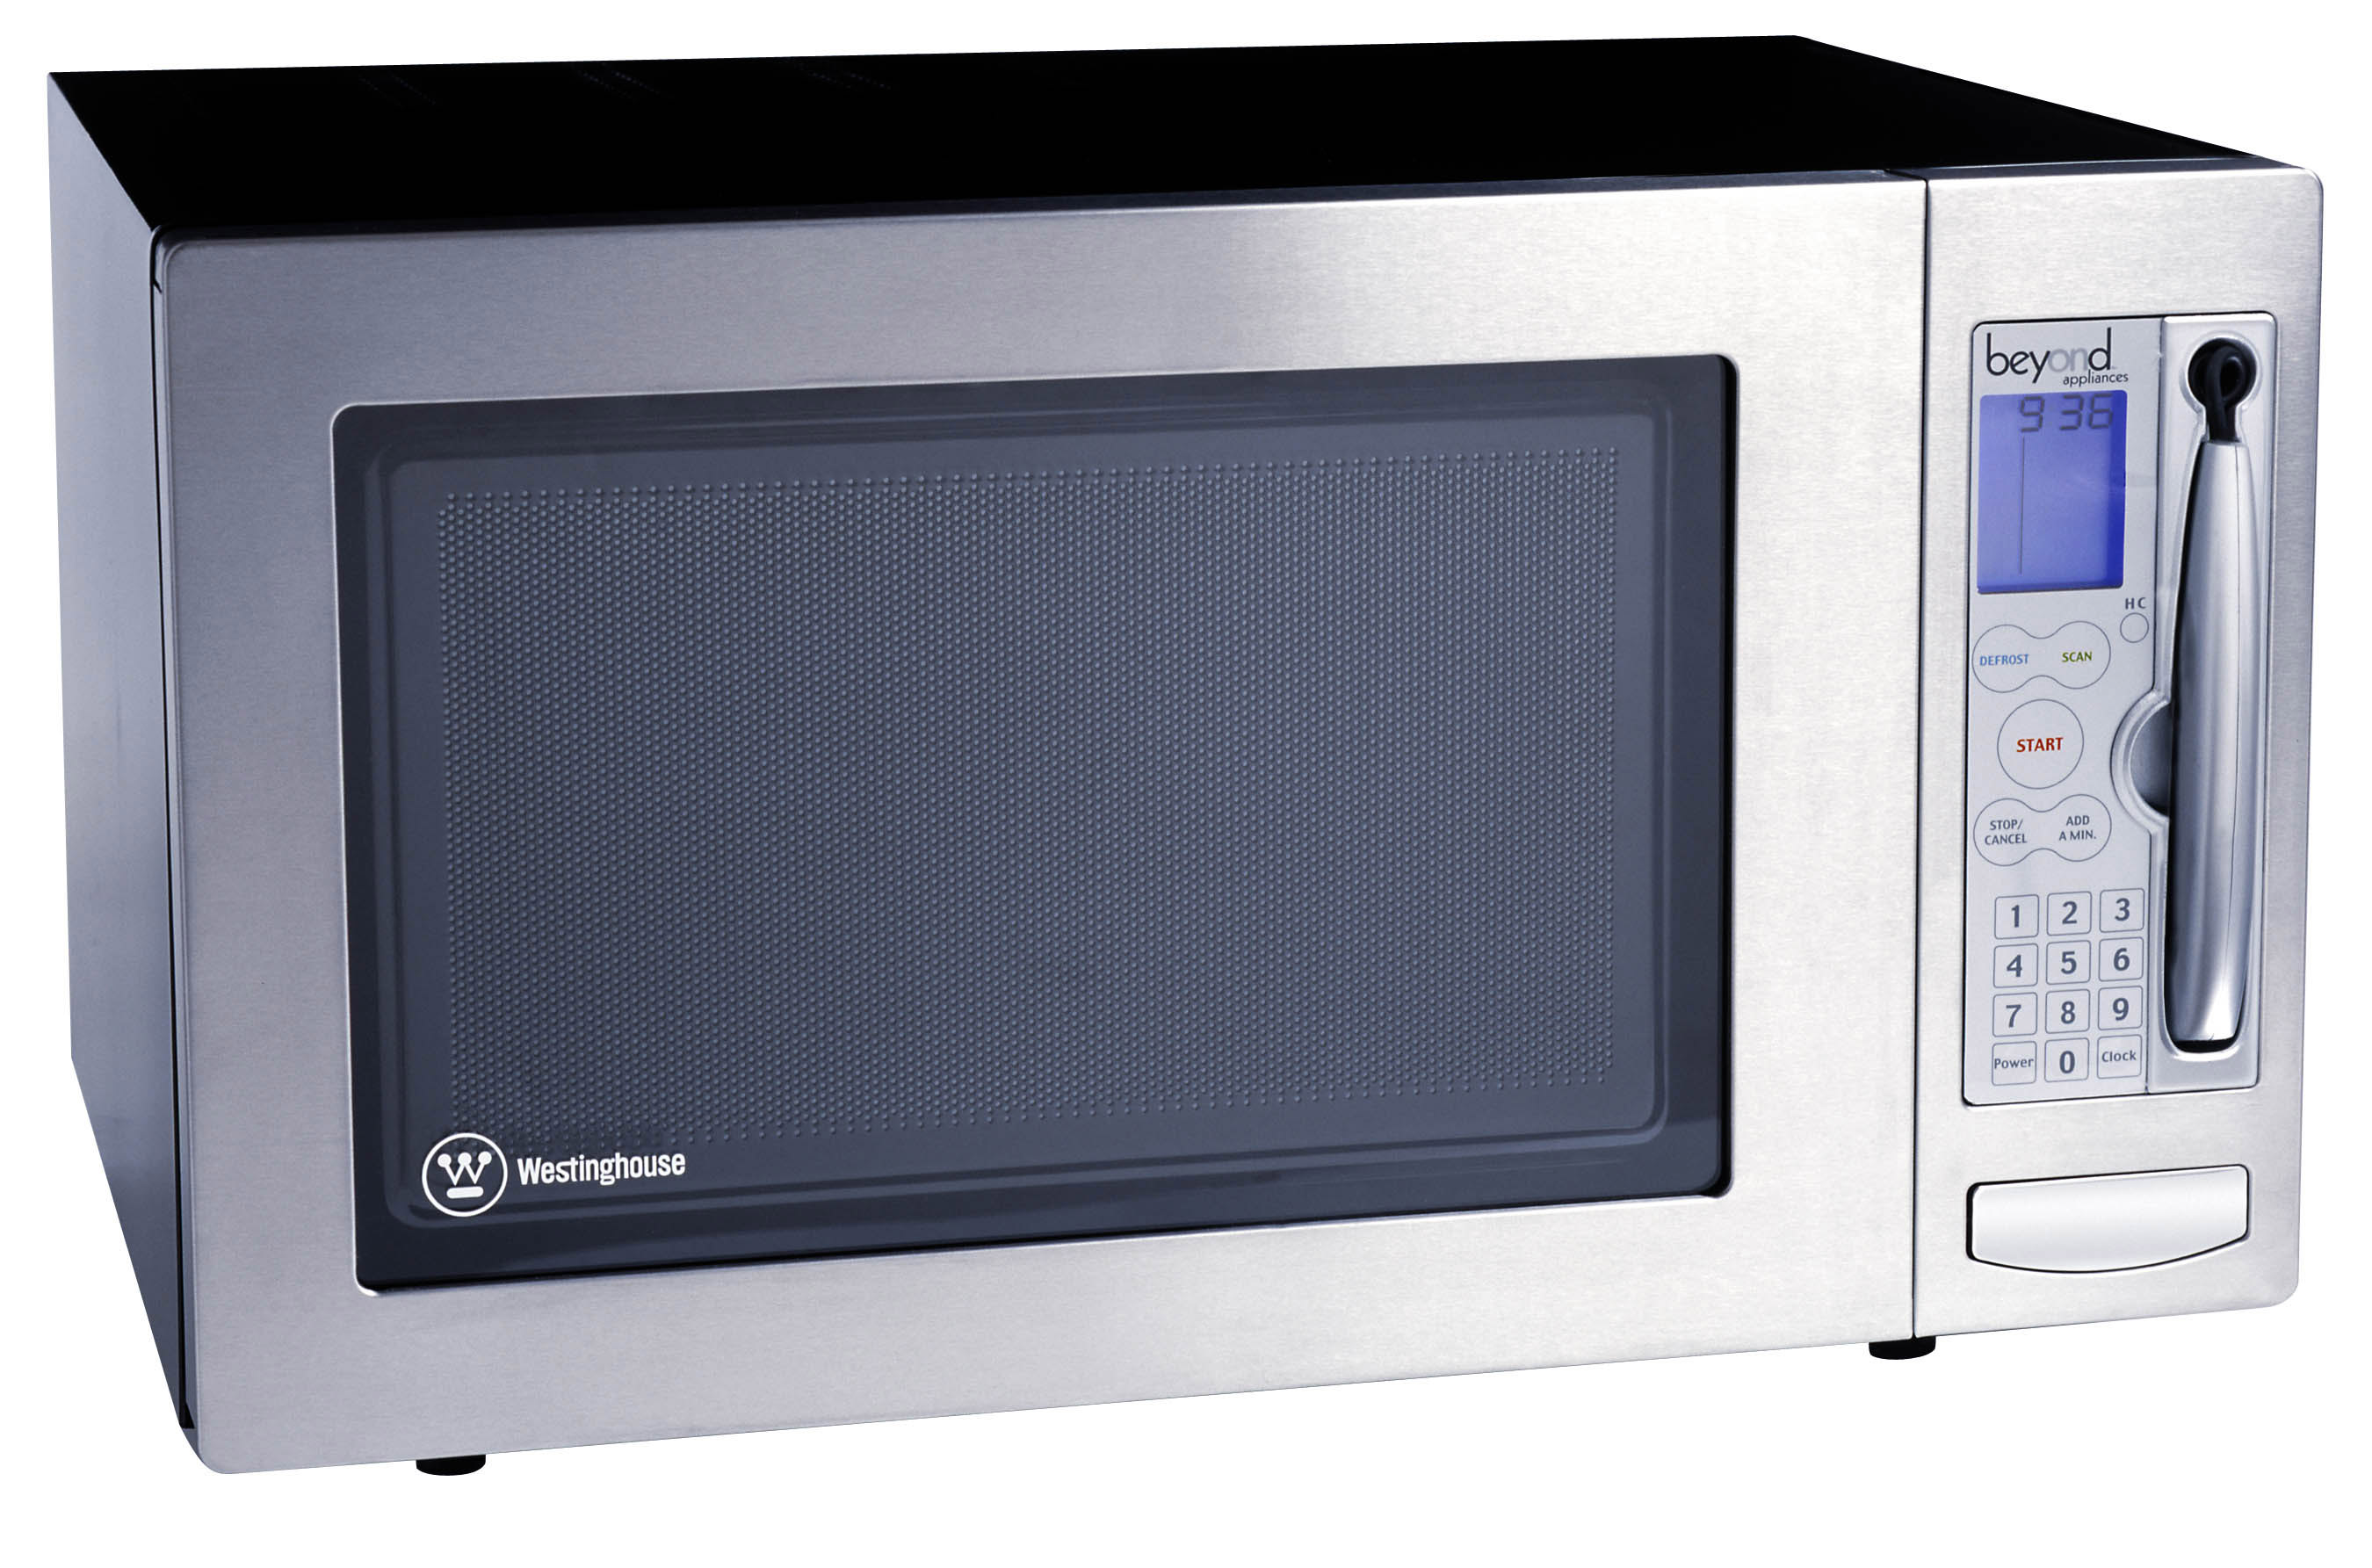 Microwave Ovens News - The New York Times